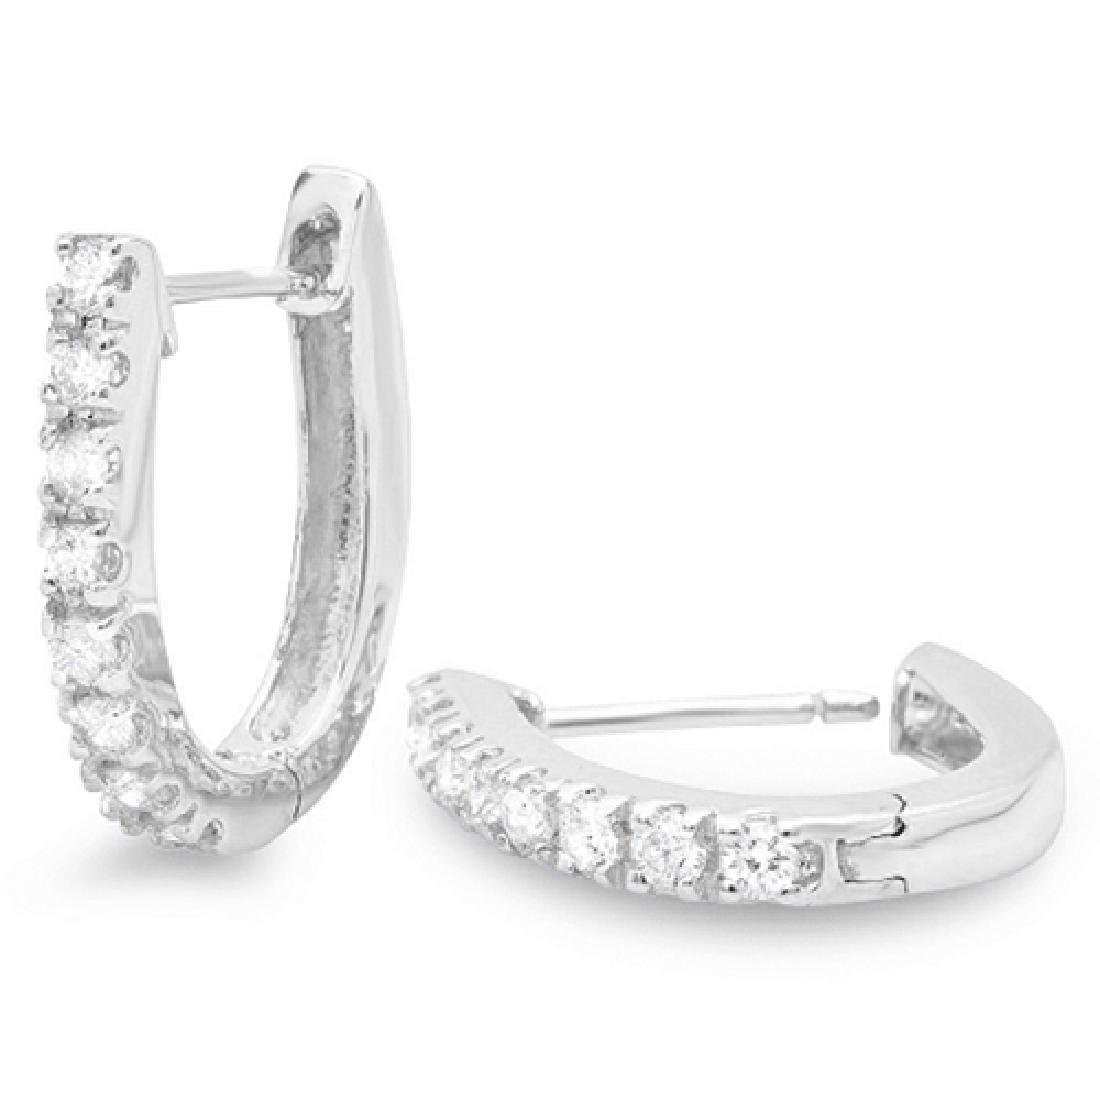 0.45 Carat Natural Diamond 18K Solid White Gold Earring - 2